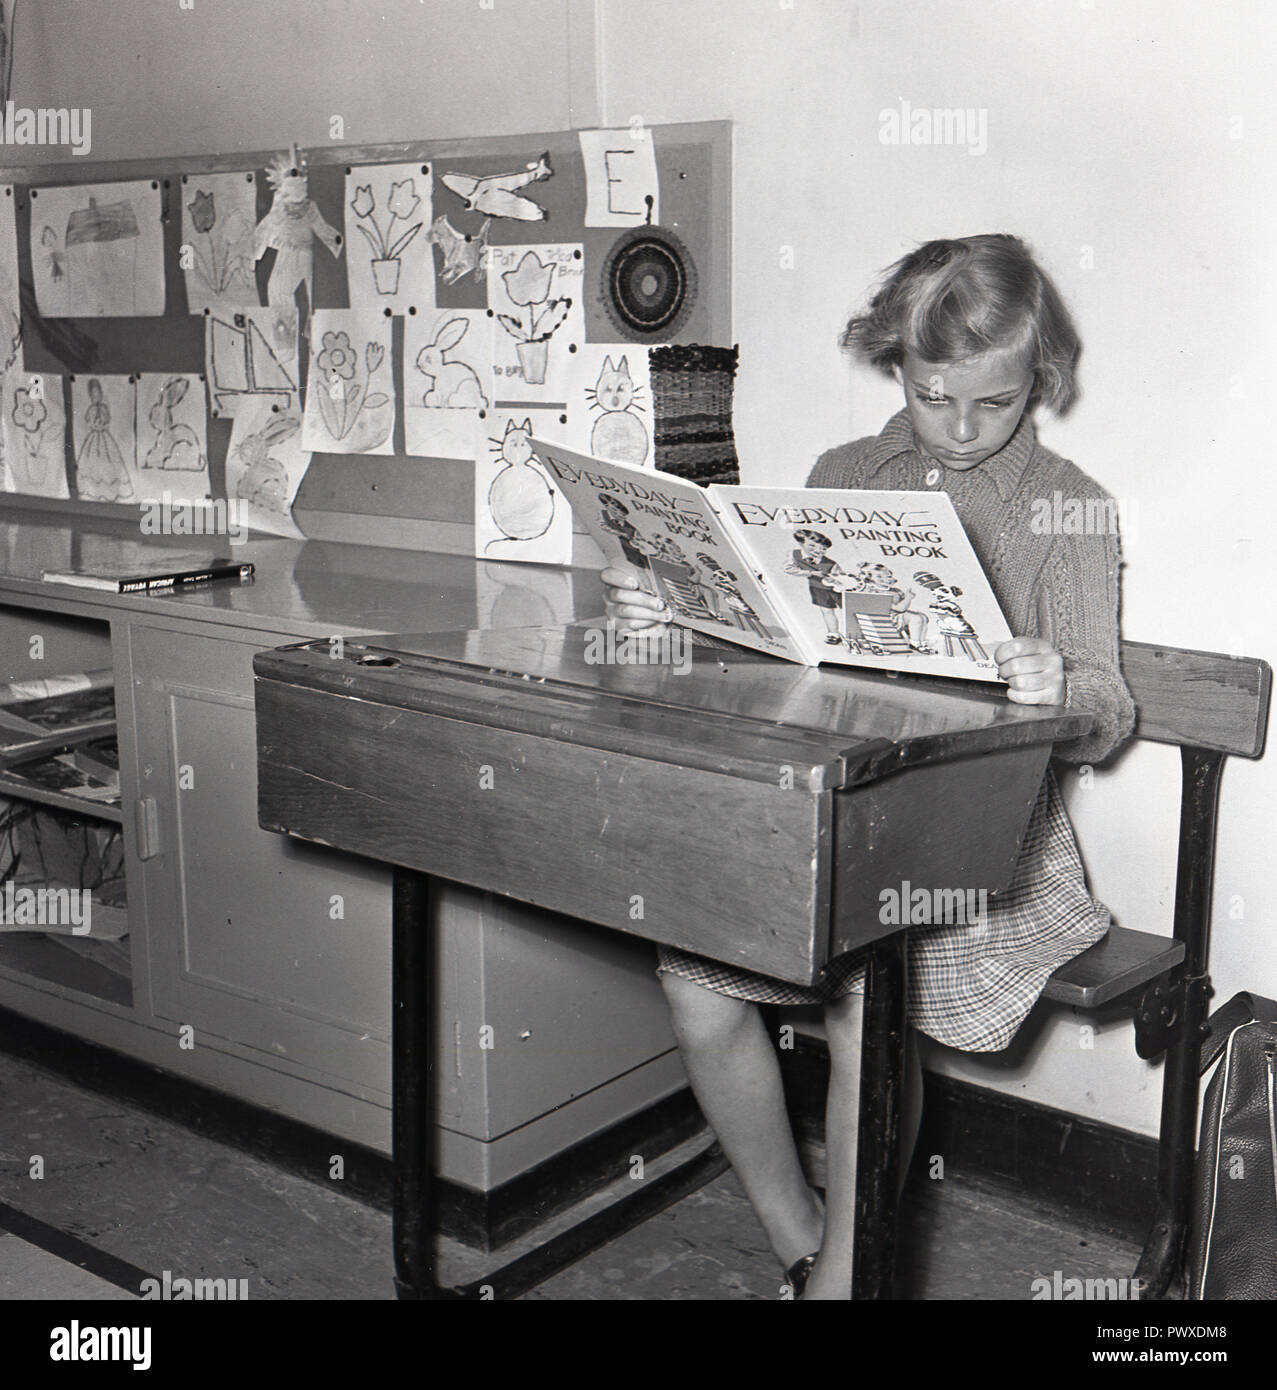 1950s, historical, young girl in a nursery or playgroup sitting at a small wooden and metal framed school desk - with inkwell and lift up lid -  looking at an Everyday painting book, England, UK. - Stock Image